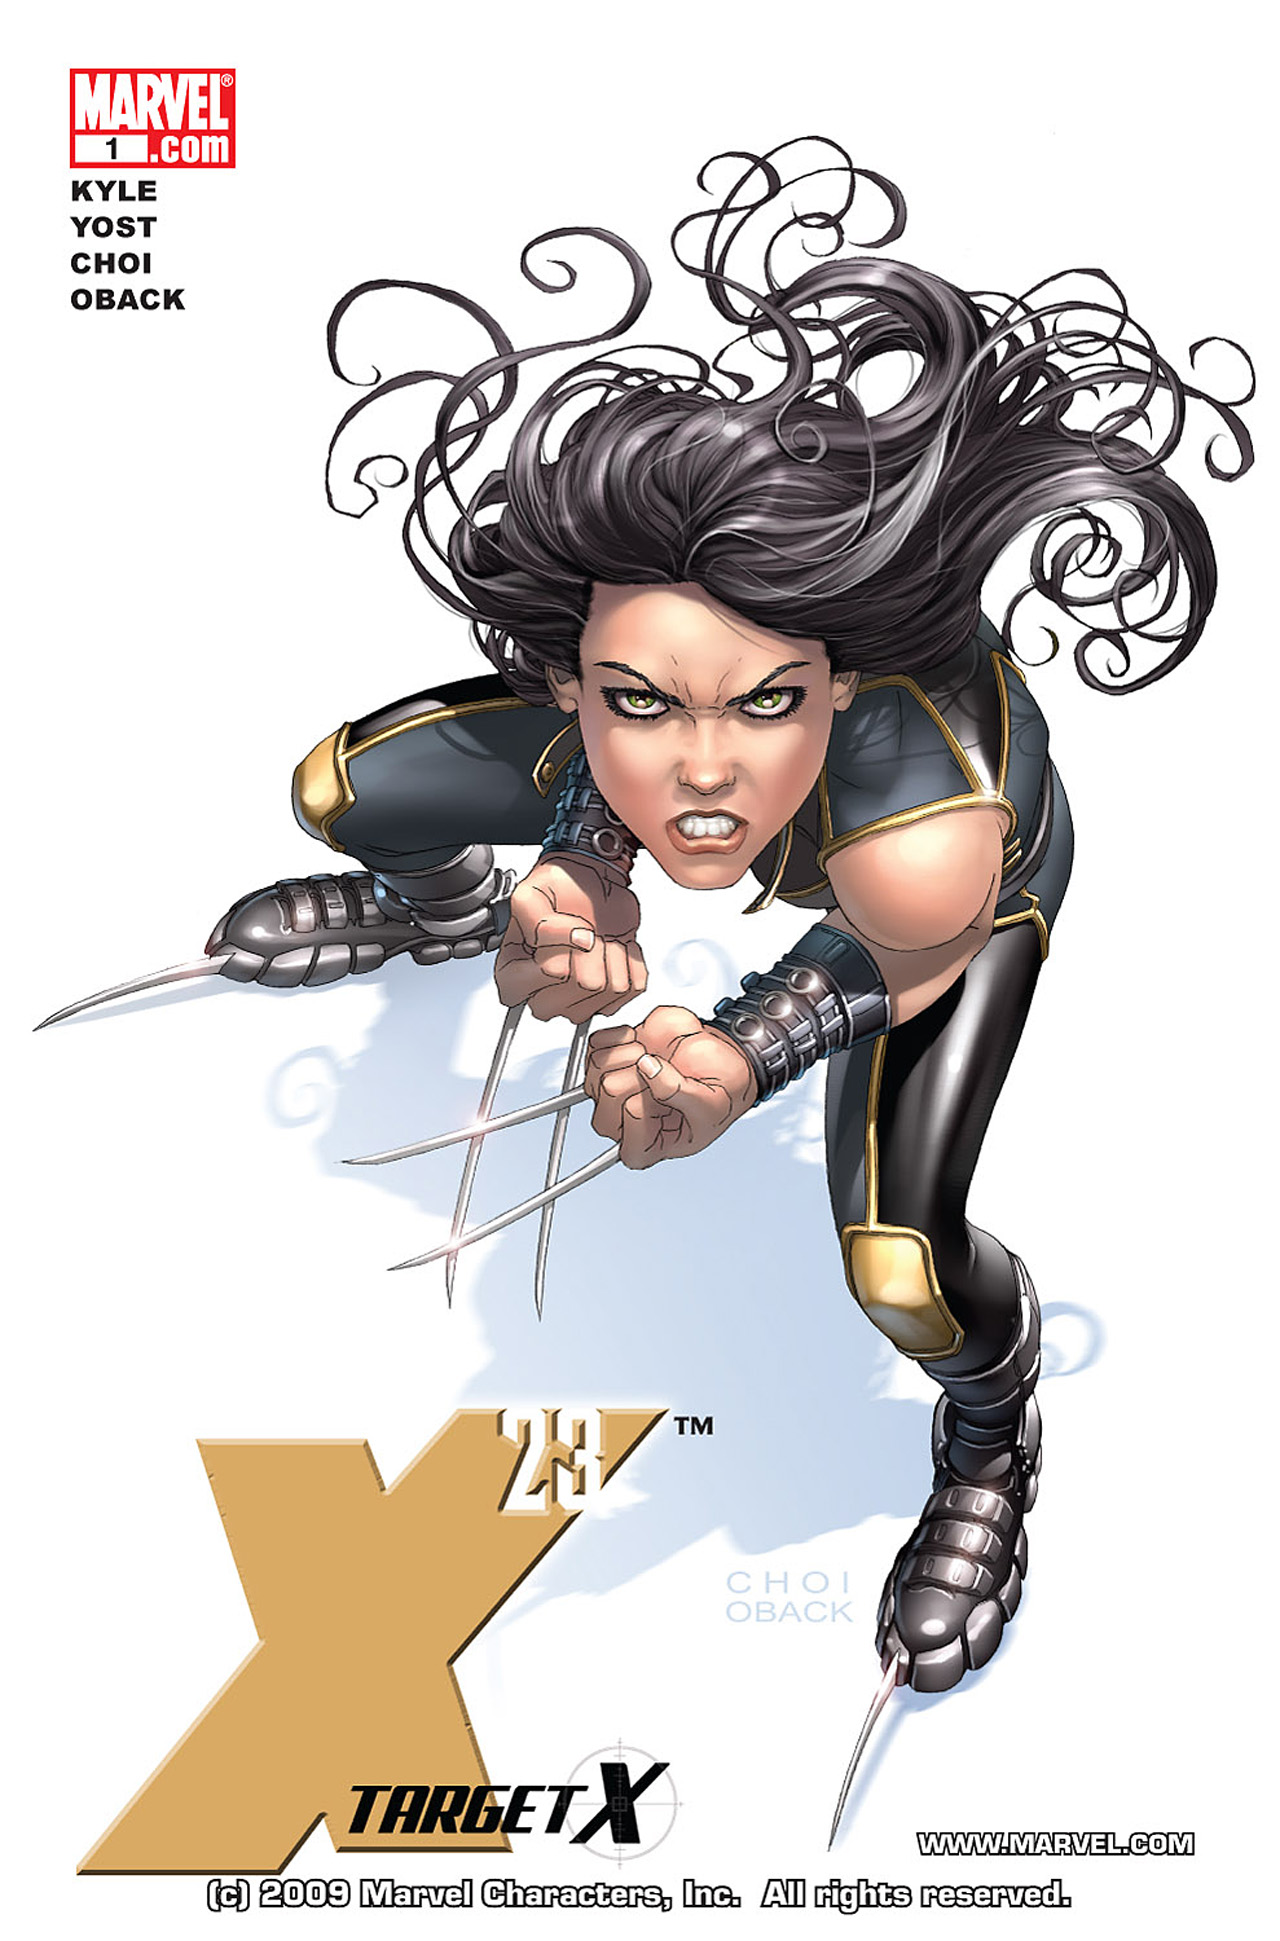 Read online X-23: Target X comic -  Issue #1 - 1